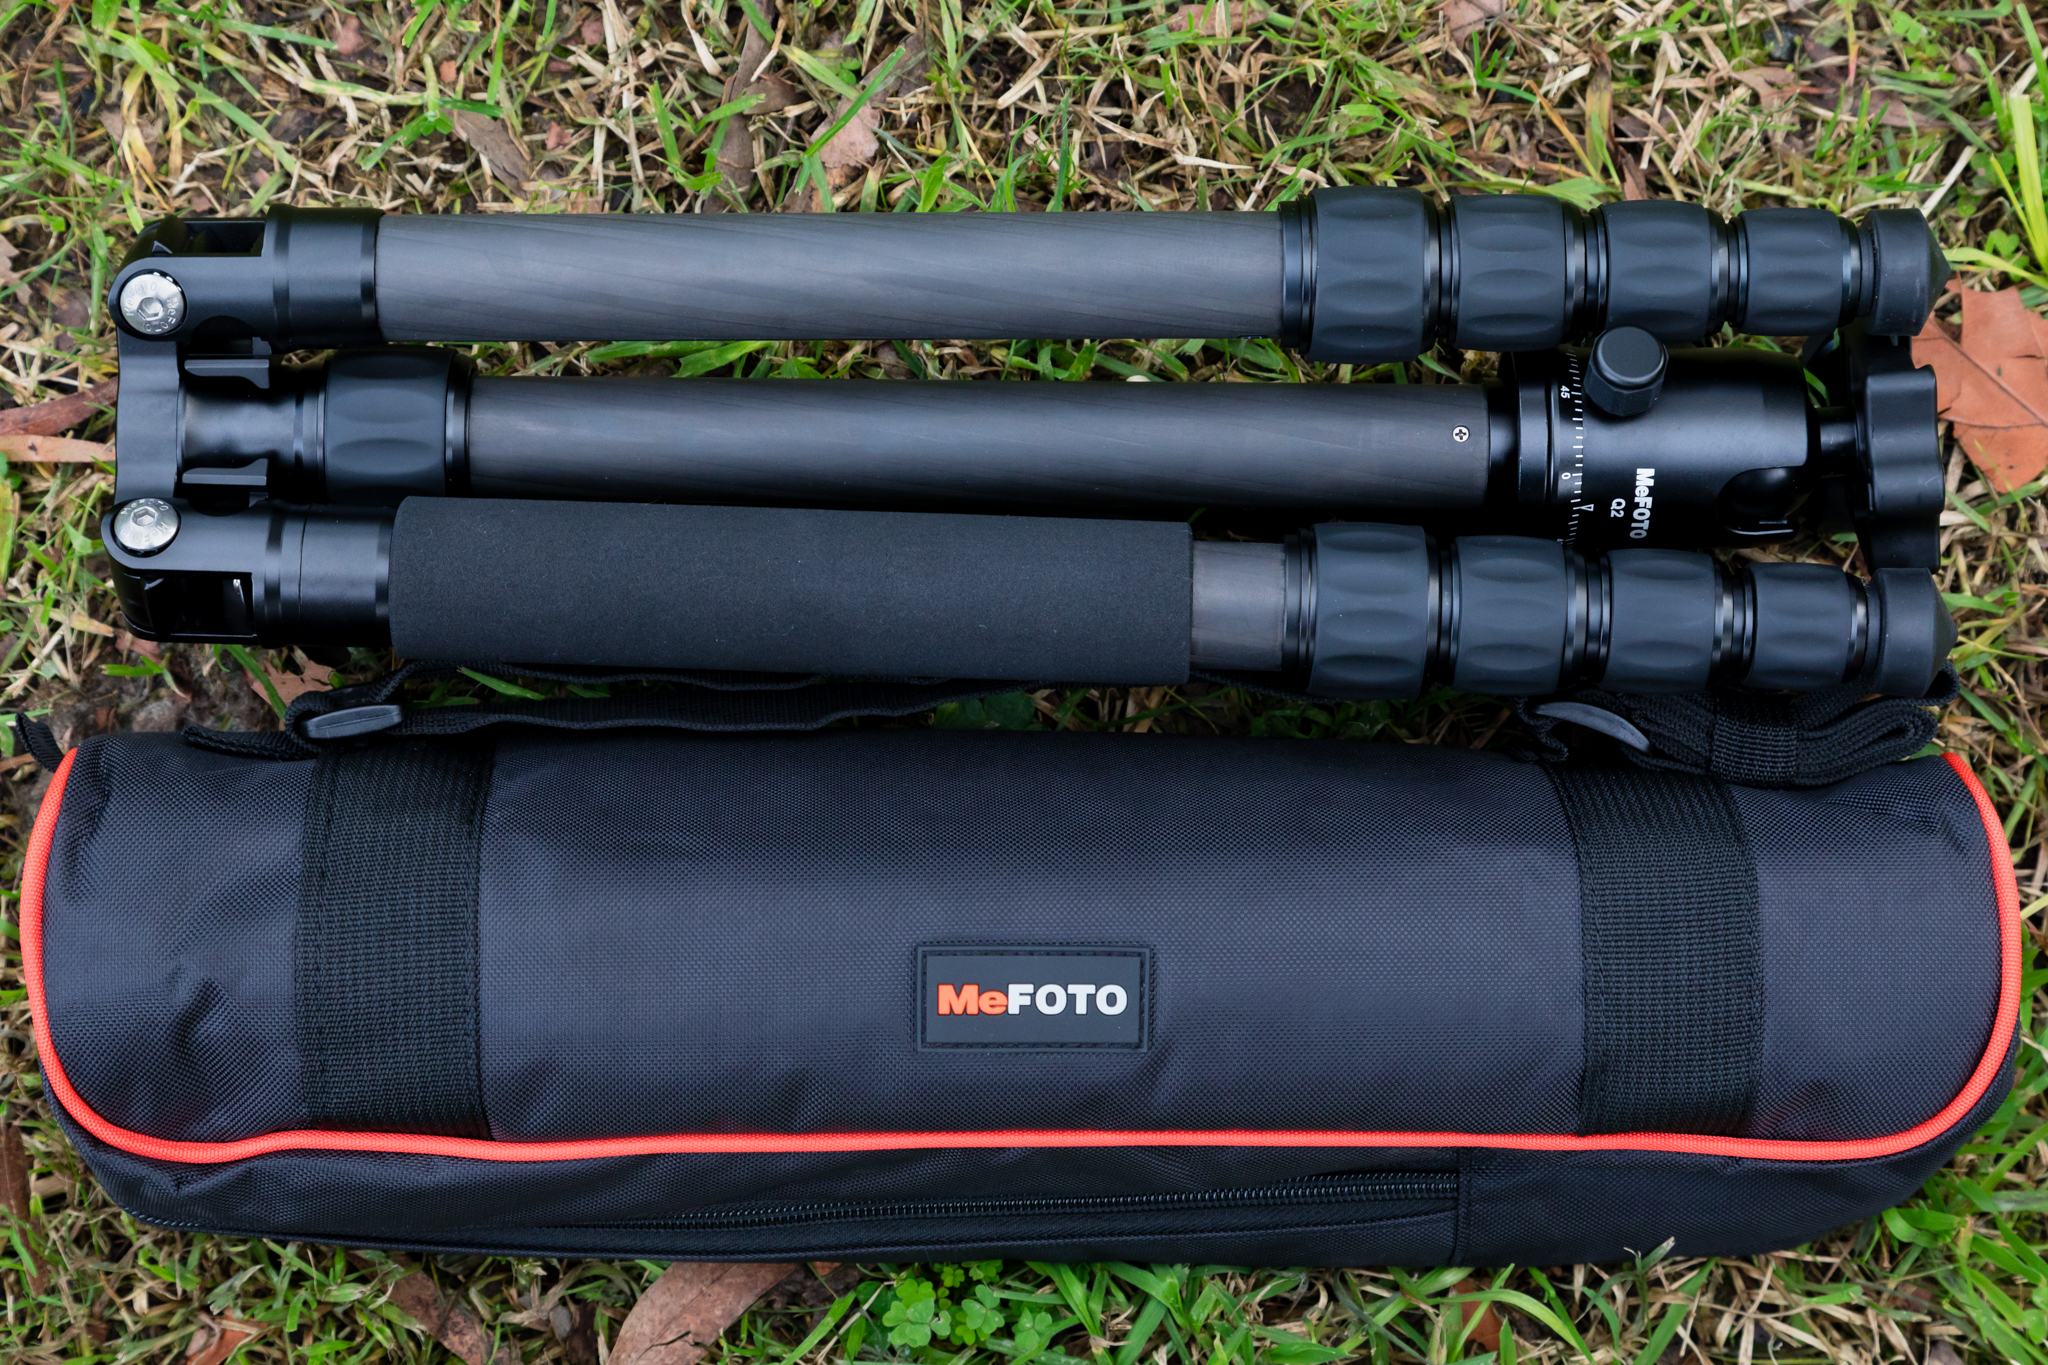 MeFOTO Globetrotter Tripod with carry bag and shoulder strap